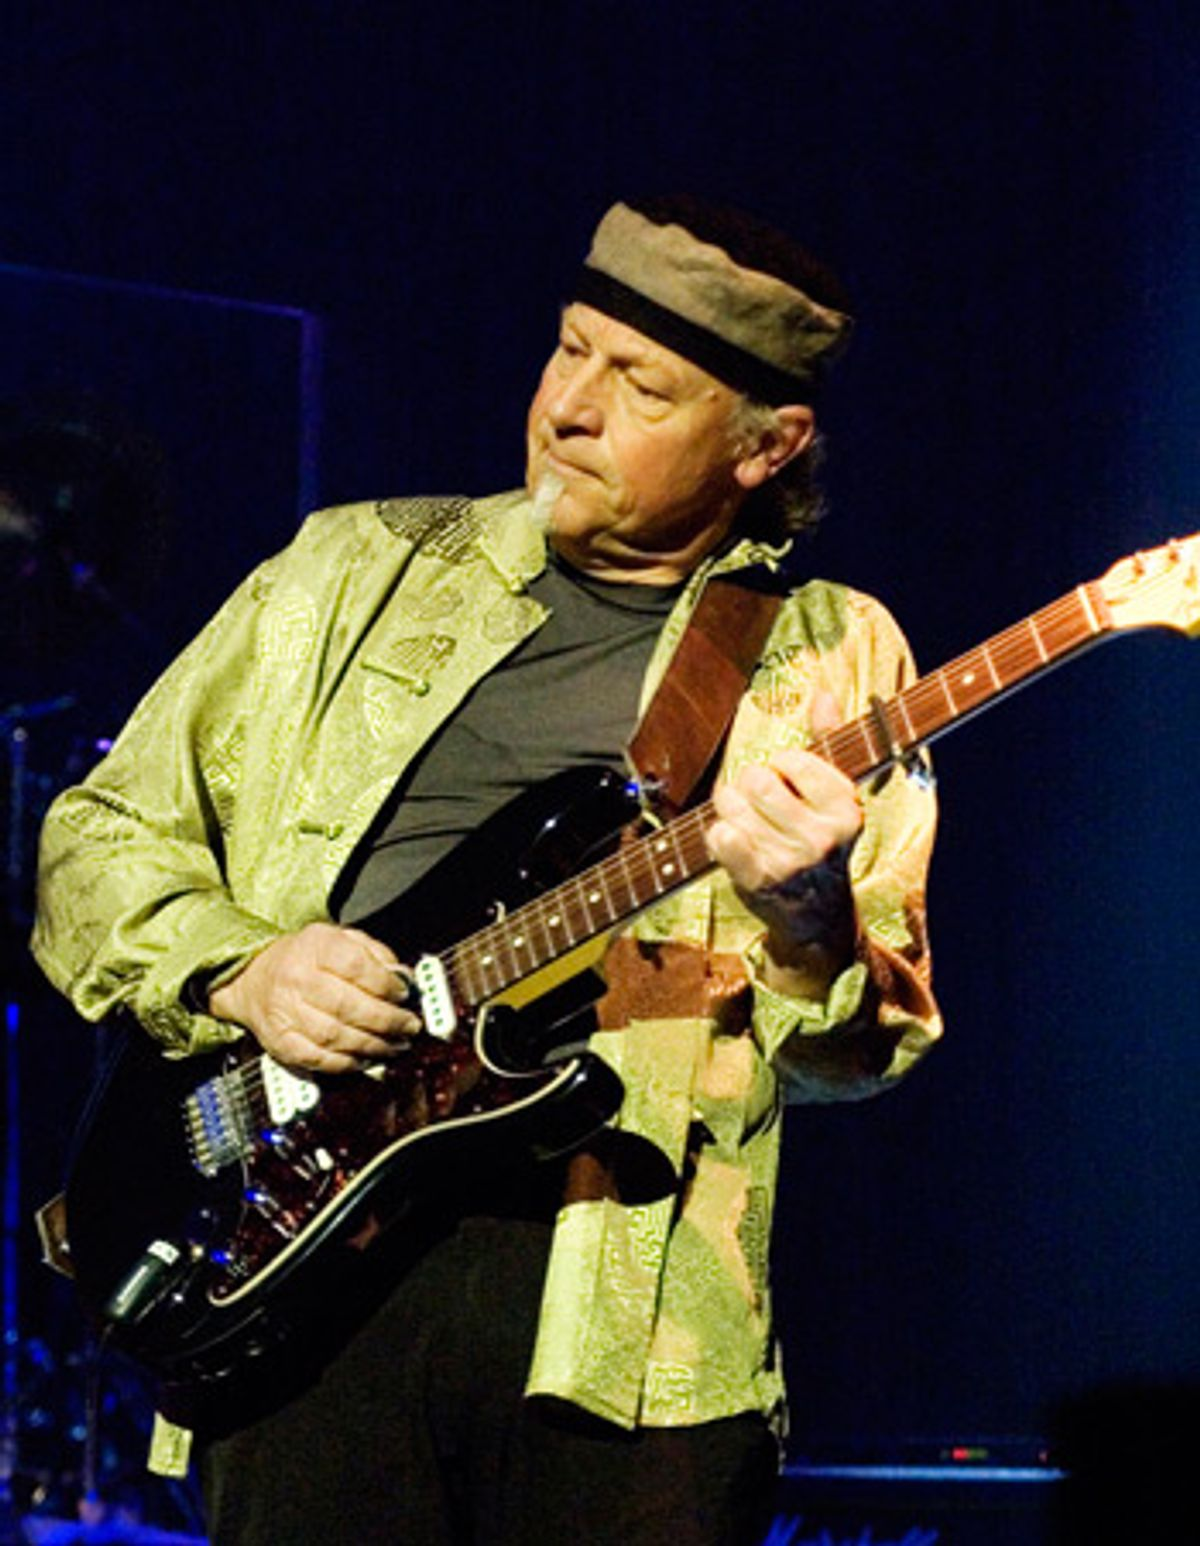 Interview: Martin Barre - Taking Aqualung on the Road